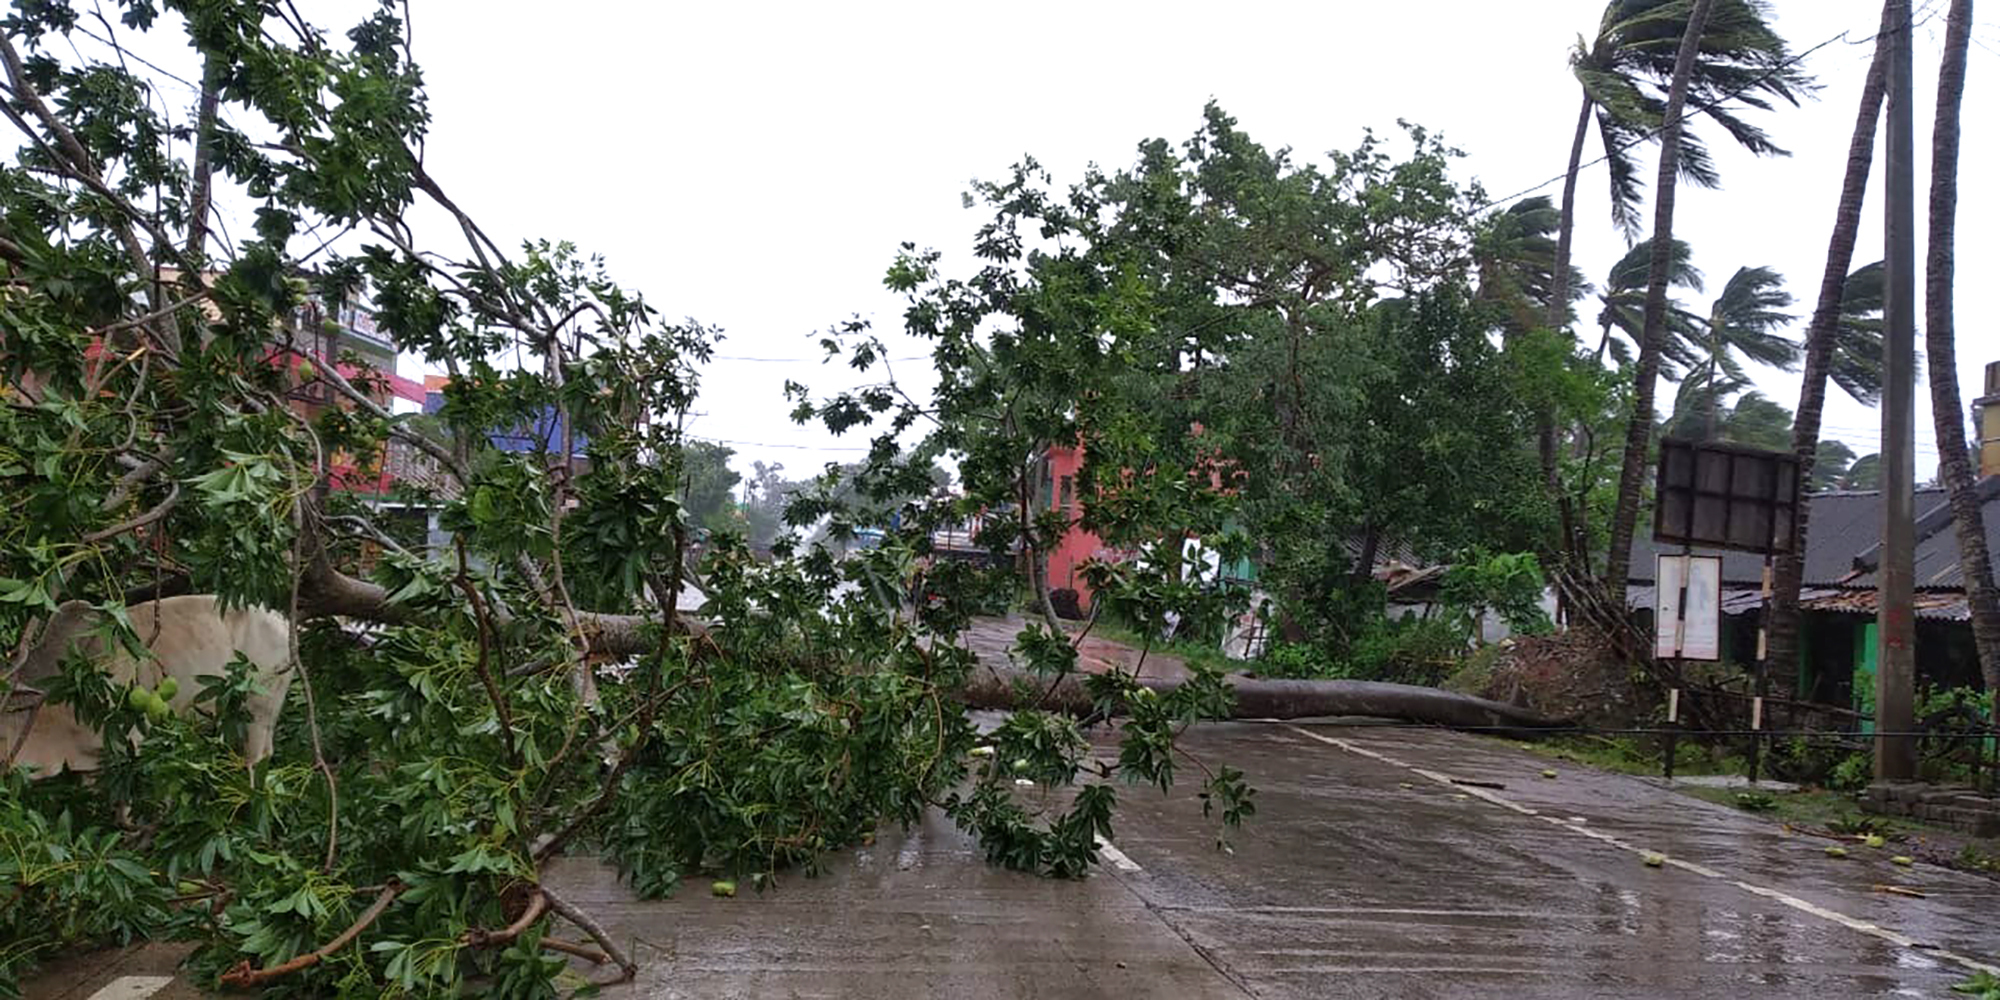 Trees lie uprooted on a highway from heavy winds ahead of Cyclone Amphan landfall, at Chandbali on the Bay of Bengal coast in Orissa, India, Wednesday, May 20, 2020. A powerful cyclone is moving toward India and Bangladesh as authorities try to evacuate millions of people while maintaining social distancing. Cyclone Amphan is expected to make landfall on Wednesday afternoon, May 20, 2020, and forecasters are warning of extensive damage from high winds, heavy rainfall, tidal waves and some flooding in crowded cities like Kolkata. (AP Photo)